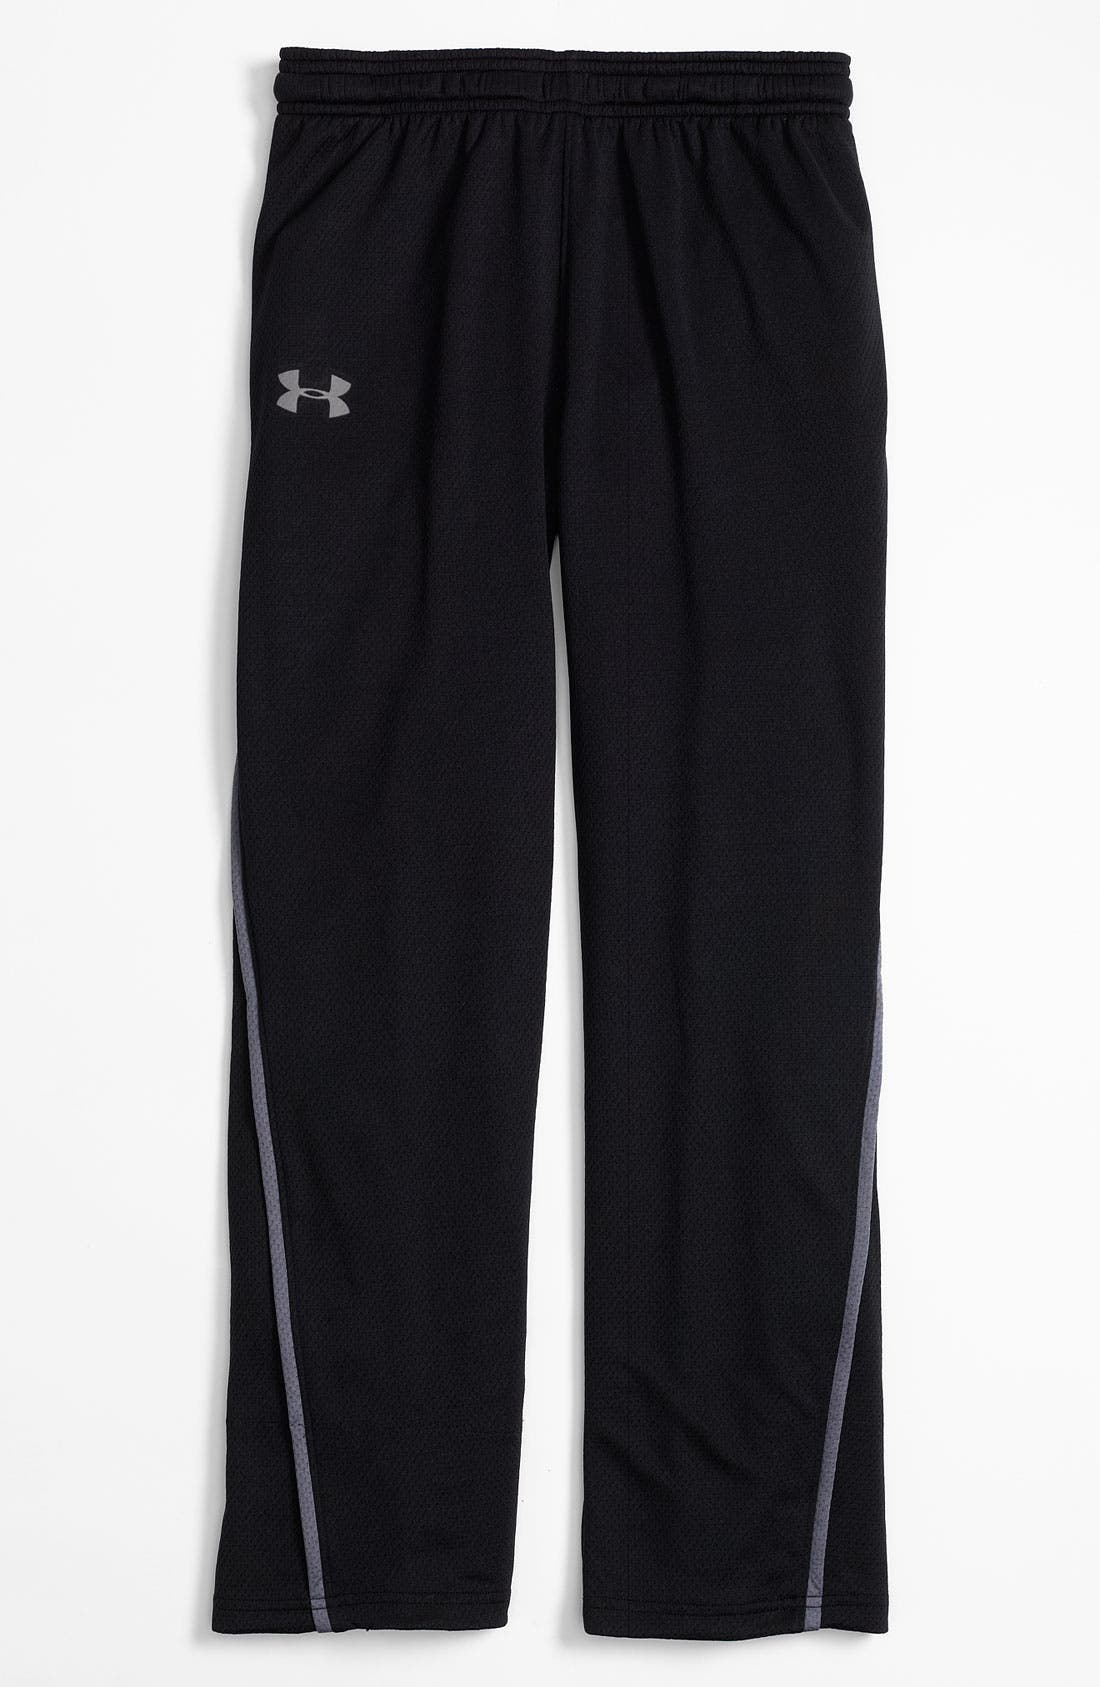 Main Image - Under Armour 'Catalyst' Pants (Big Boys)